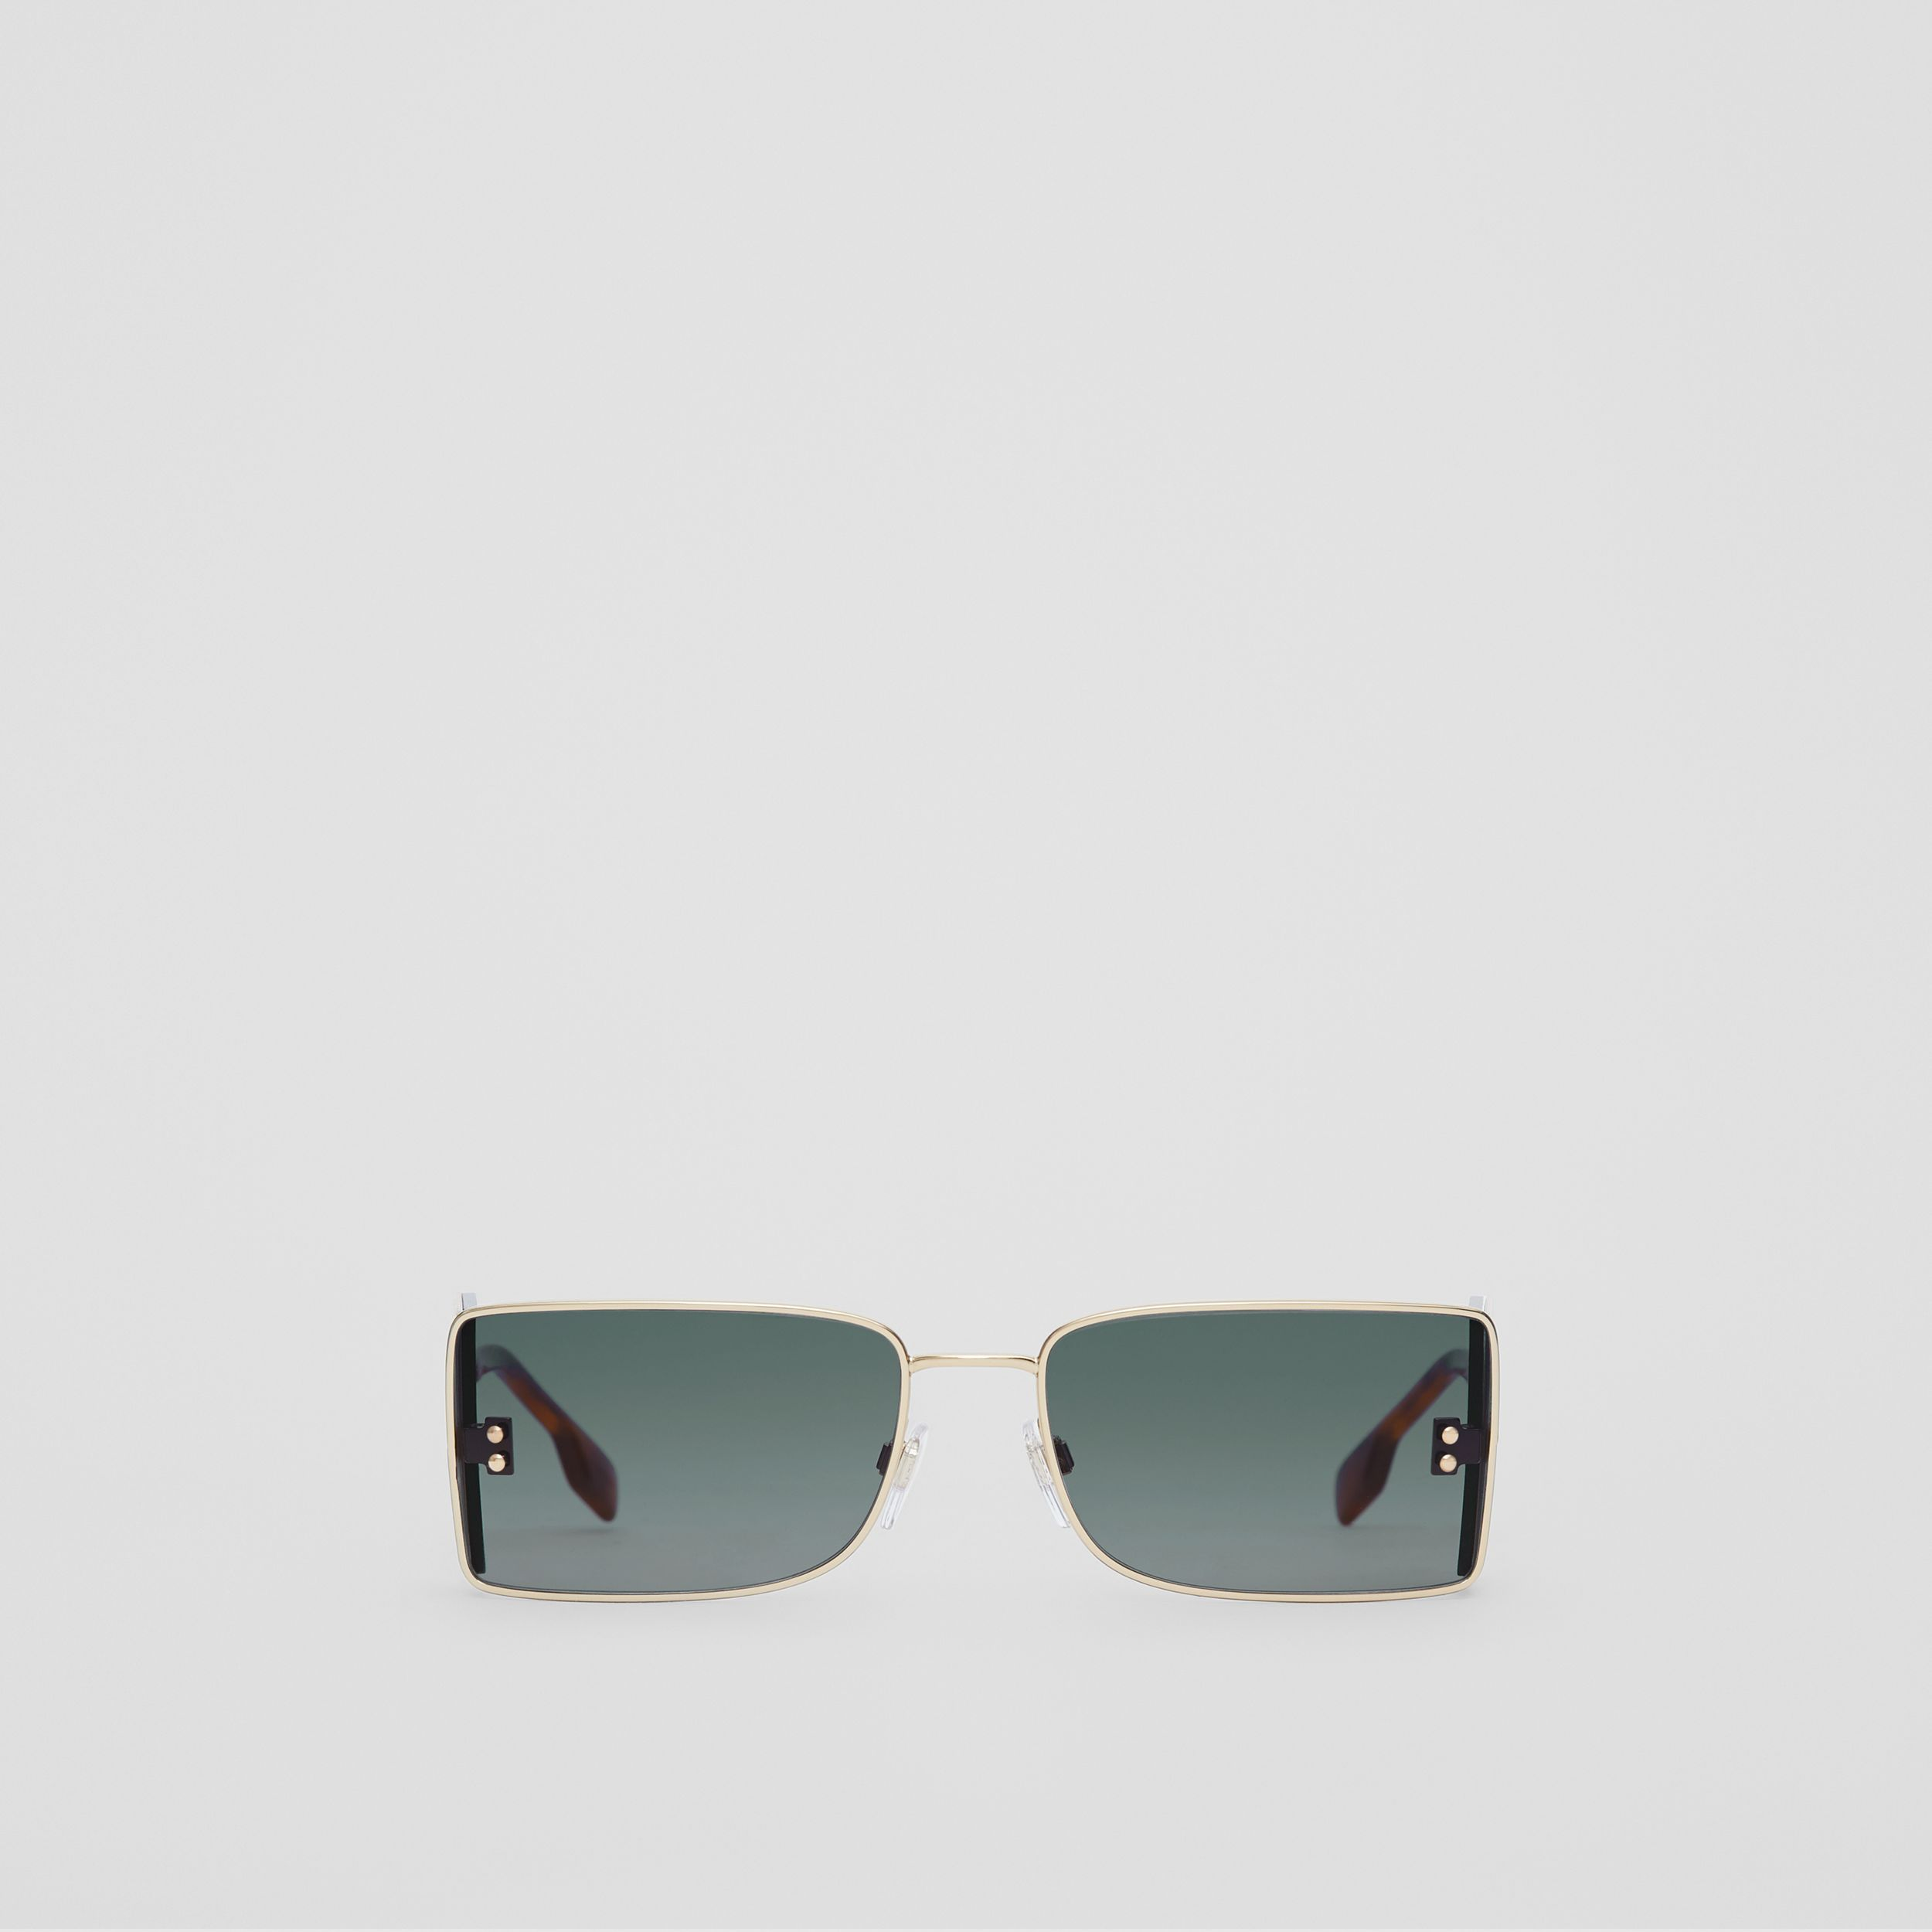 'B' Lens Detail Rectangular Frame Sunglasses in Tortoiseshell | Burberry Canada - 1